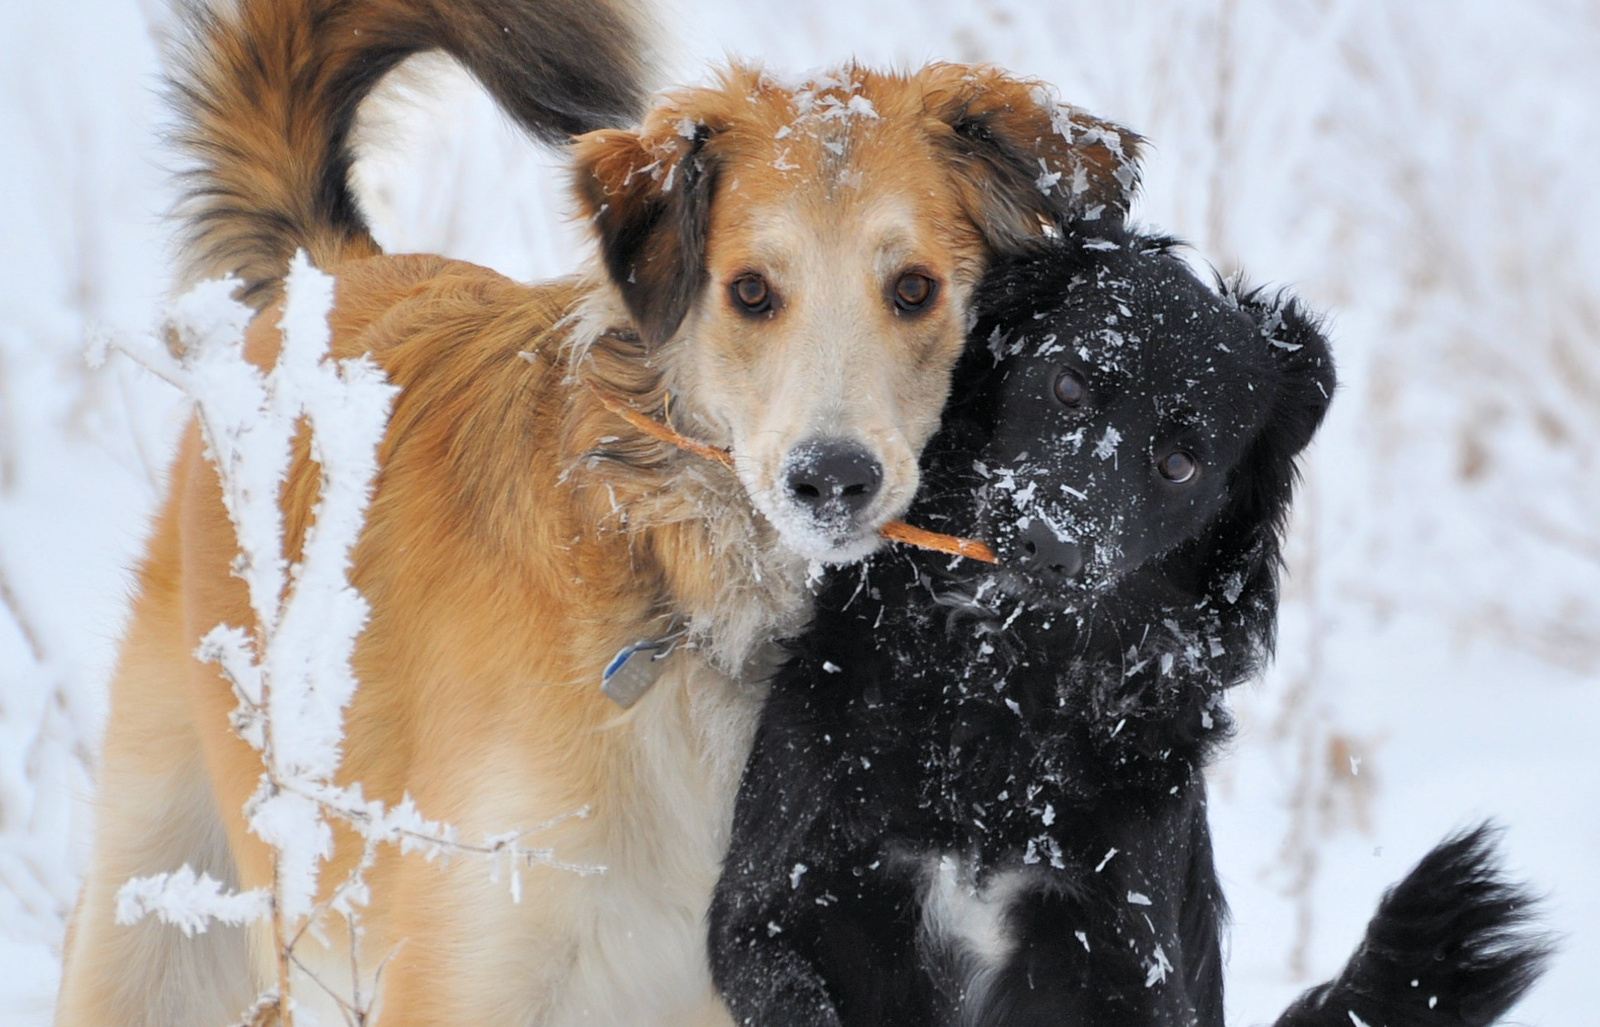 How to Protect Your Pet During Winter and Cold Weather